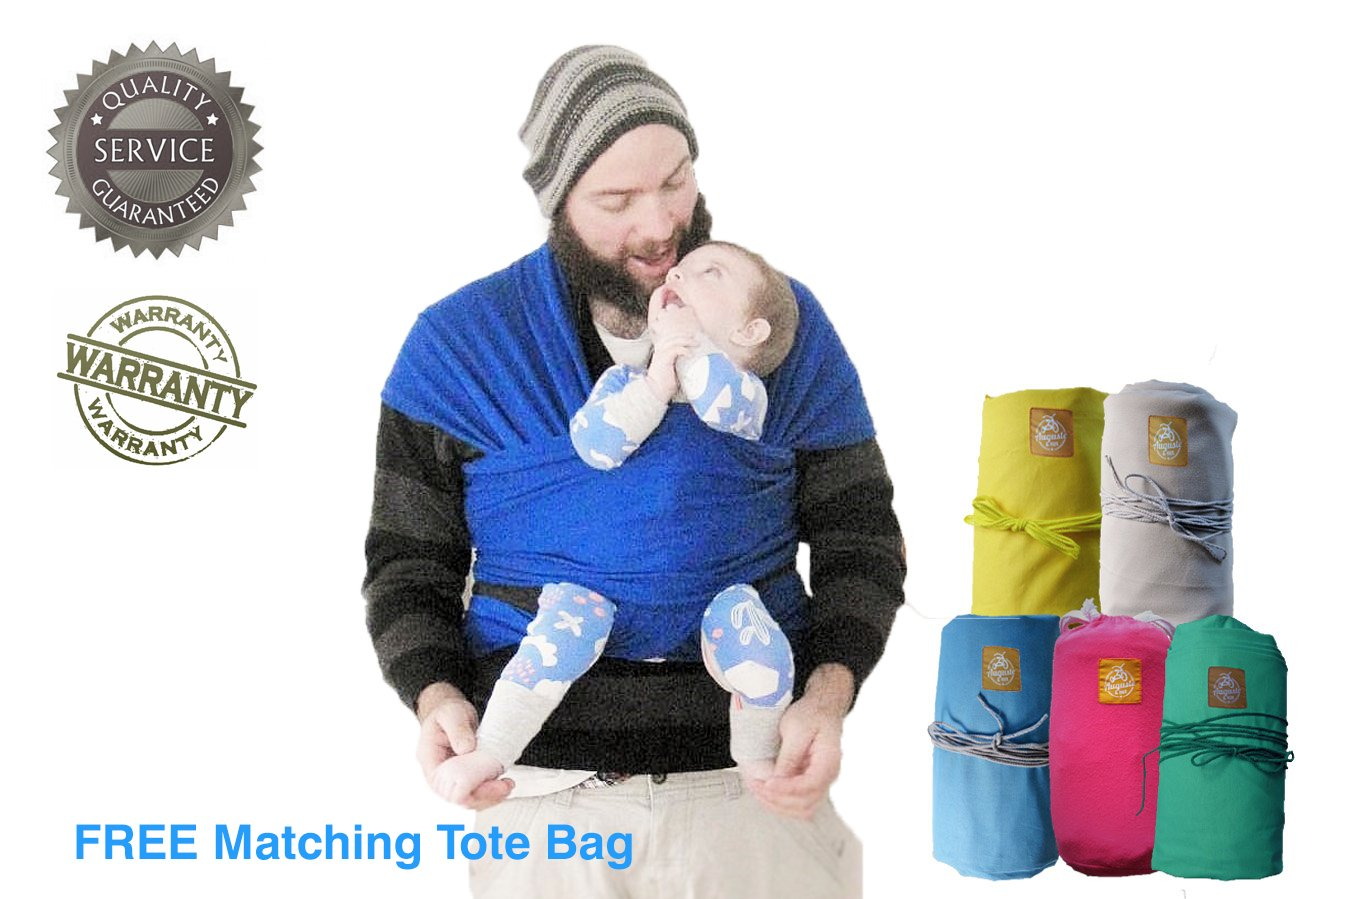 Auguste Hux Grey Cotton Baby Wrap Sling Carrier. In blue, teal, yellow. Soft stretchy light adjustable. Suitable for newborns breastfeeding. Portable, secure, safe. Great baby shower gift.